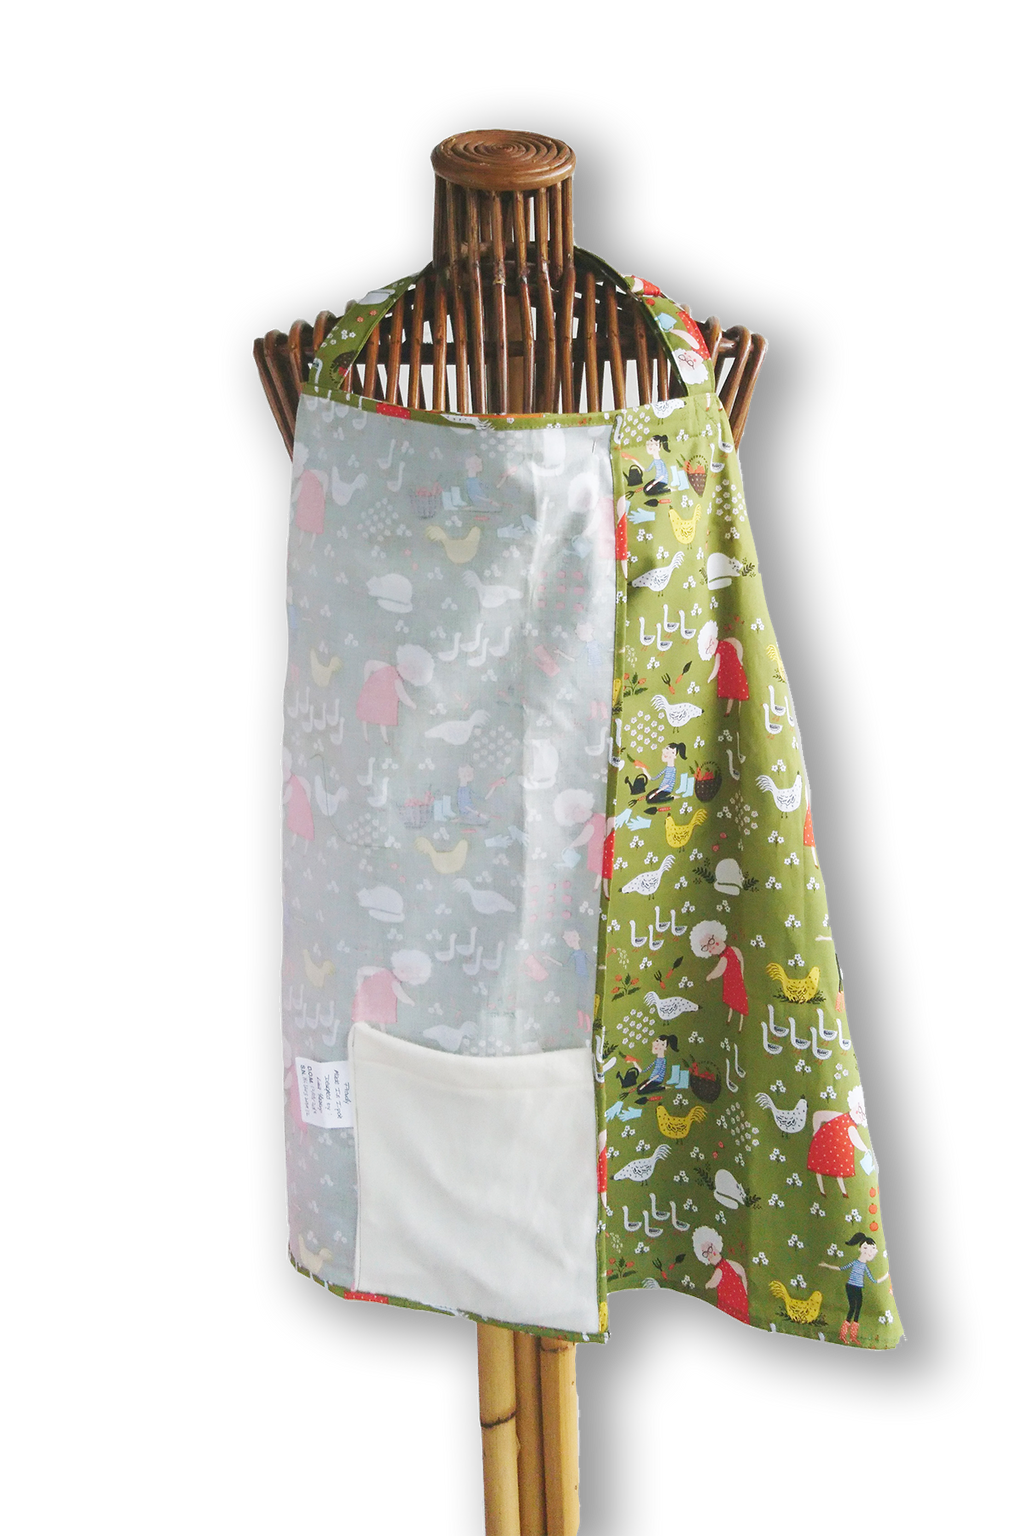 Nursing Cover - scenic g 2.png